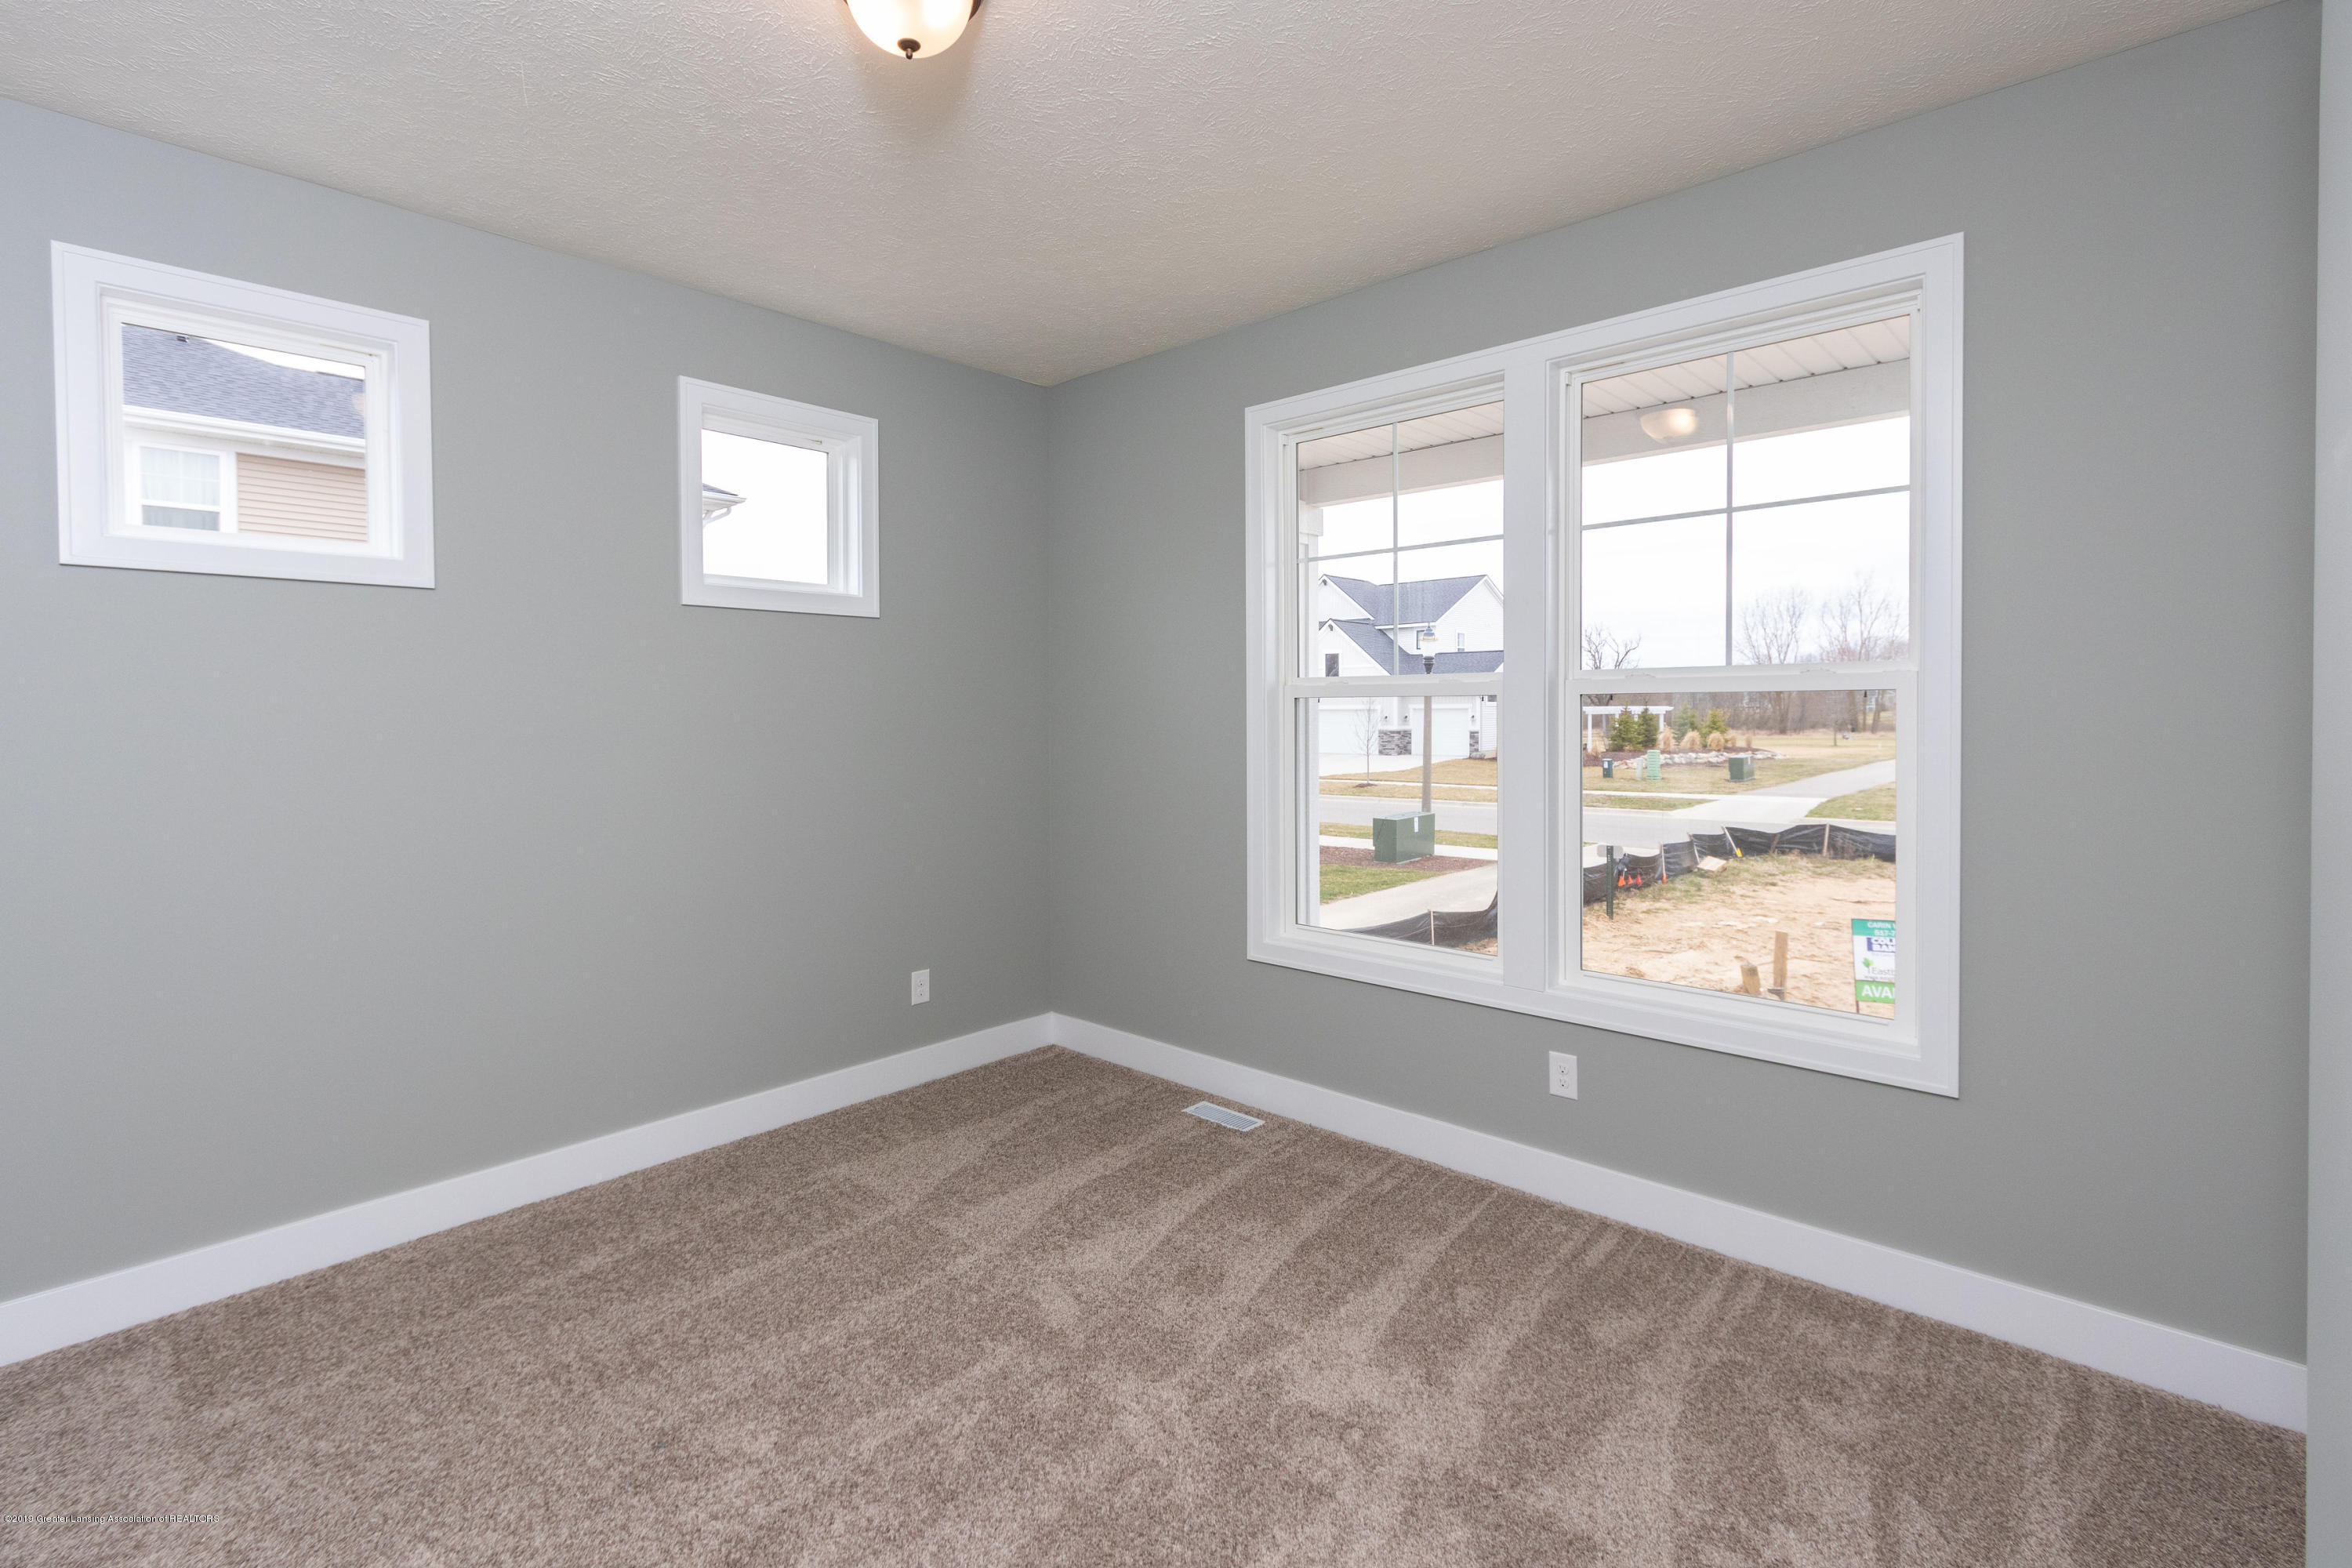 2782 Carnoustie Dr - Bedroom - 12